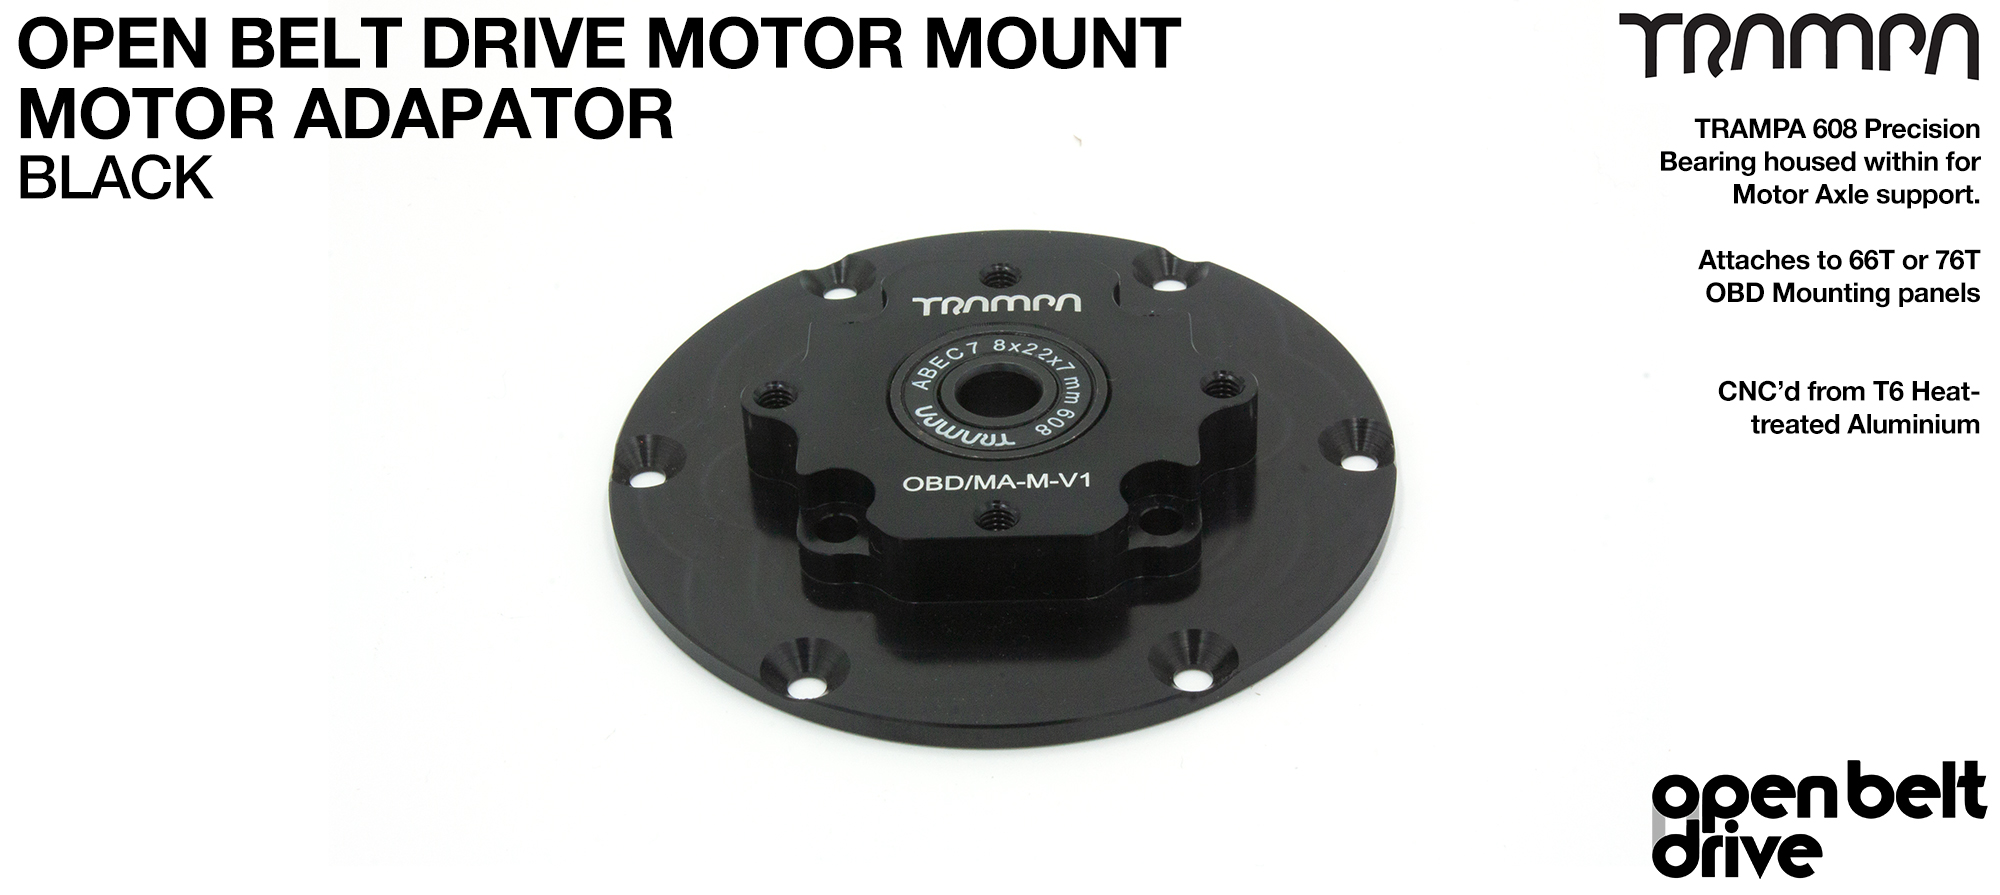 BLACK OBD Motor Adaptors with Housed Bearing